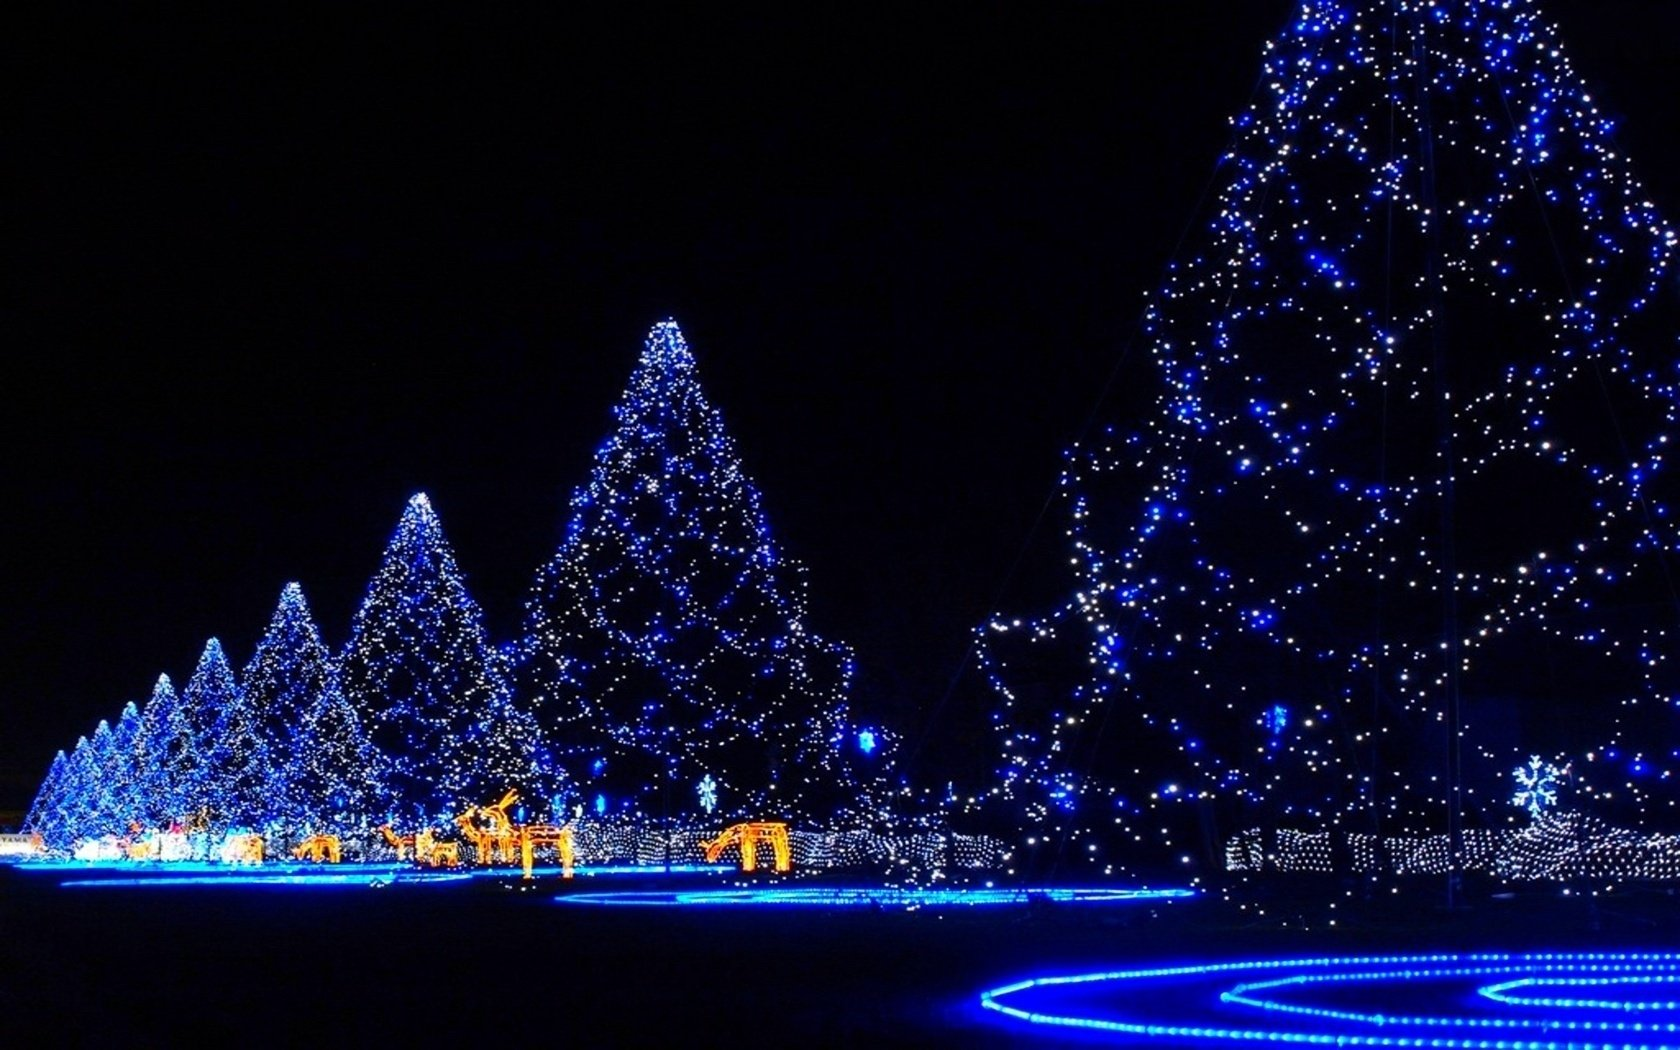 3602 Christmas Hd Wallpapers Background Images Wallpaper Abyss